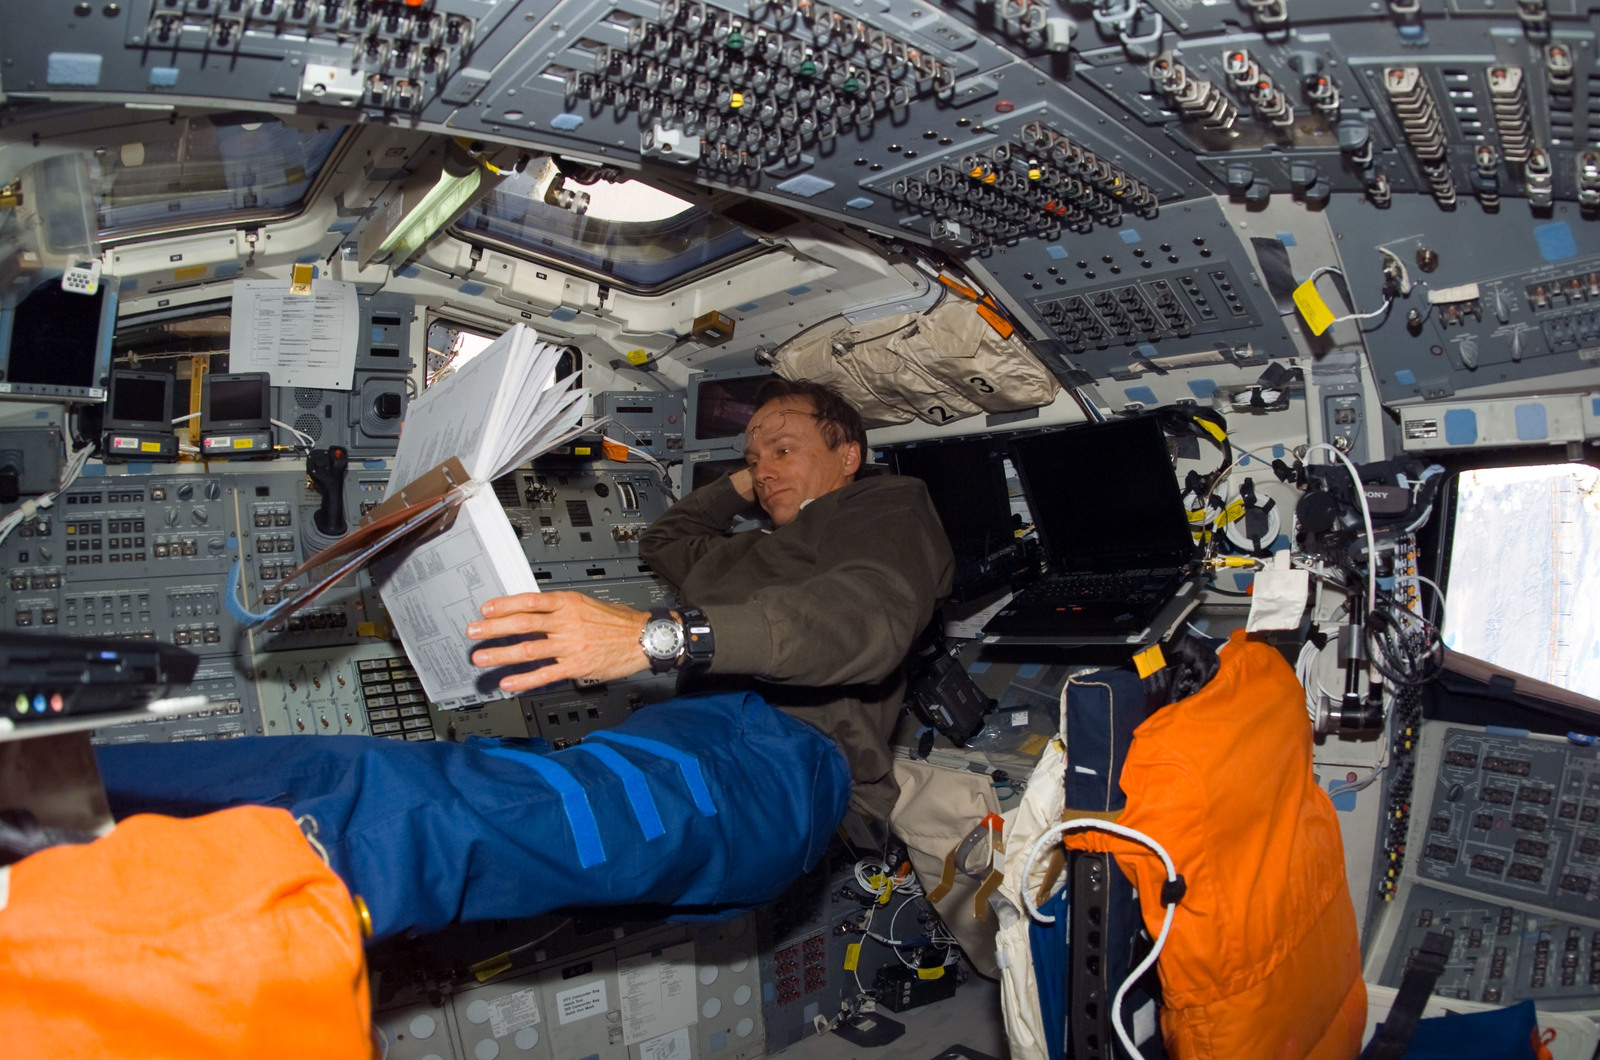 S115E06196 - STS-115 - STS-115 Pilot Ferguson looks through crew procedures in the FD during Joint Operations